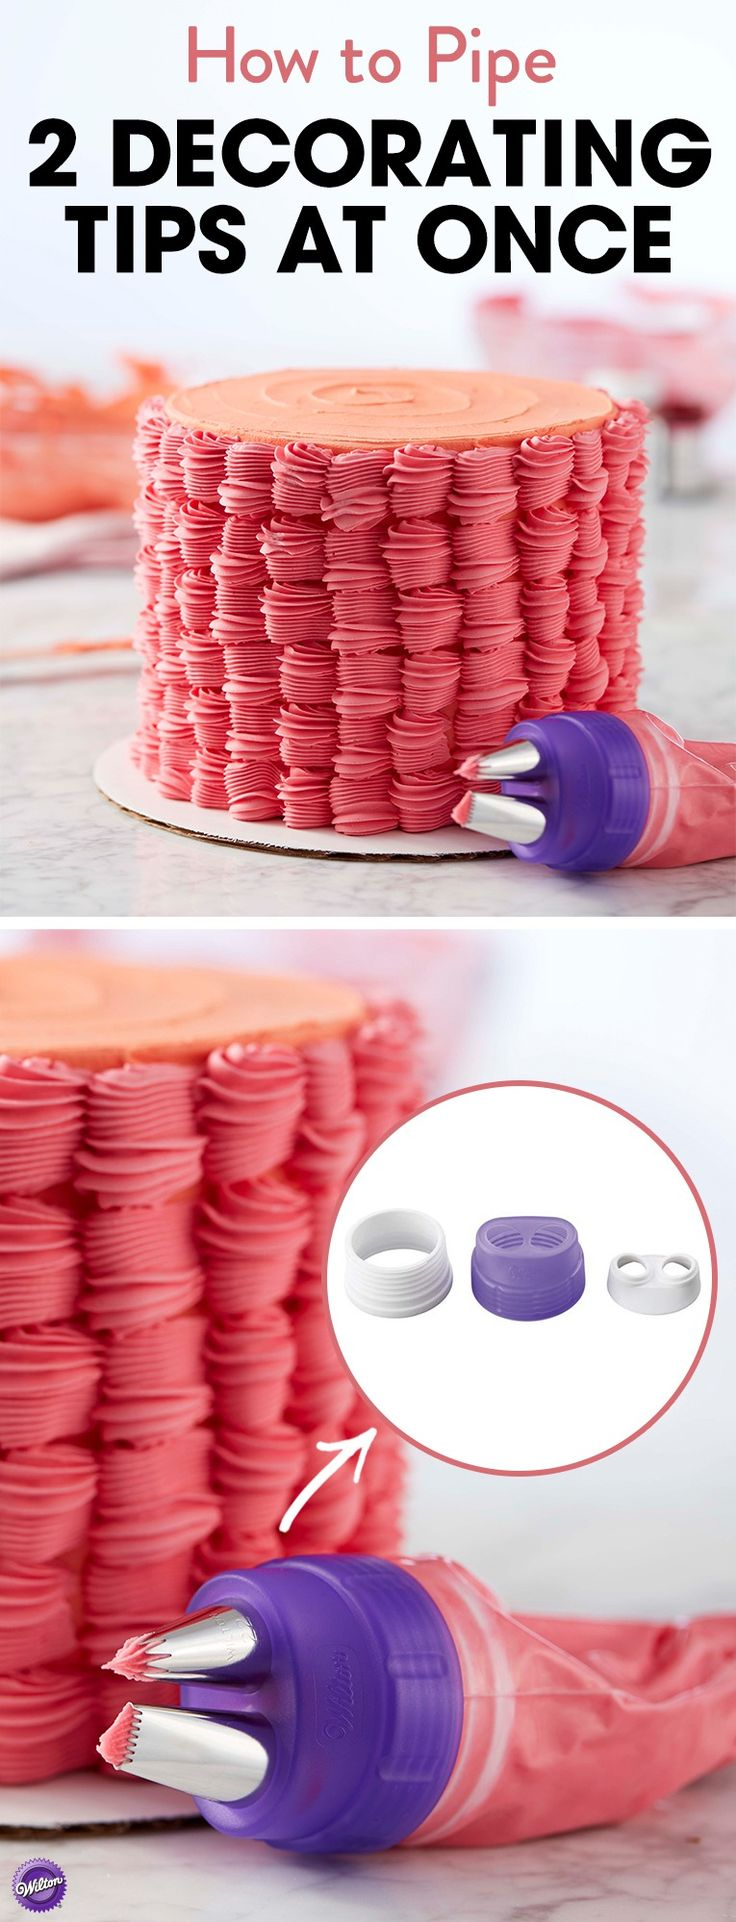 Wilton Cake Decorating Tips And Bags : Best 20+ Wilton Tips ideas on Pinterest Wilton piping ...